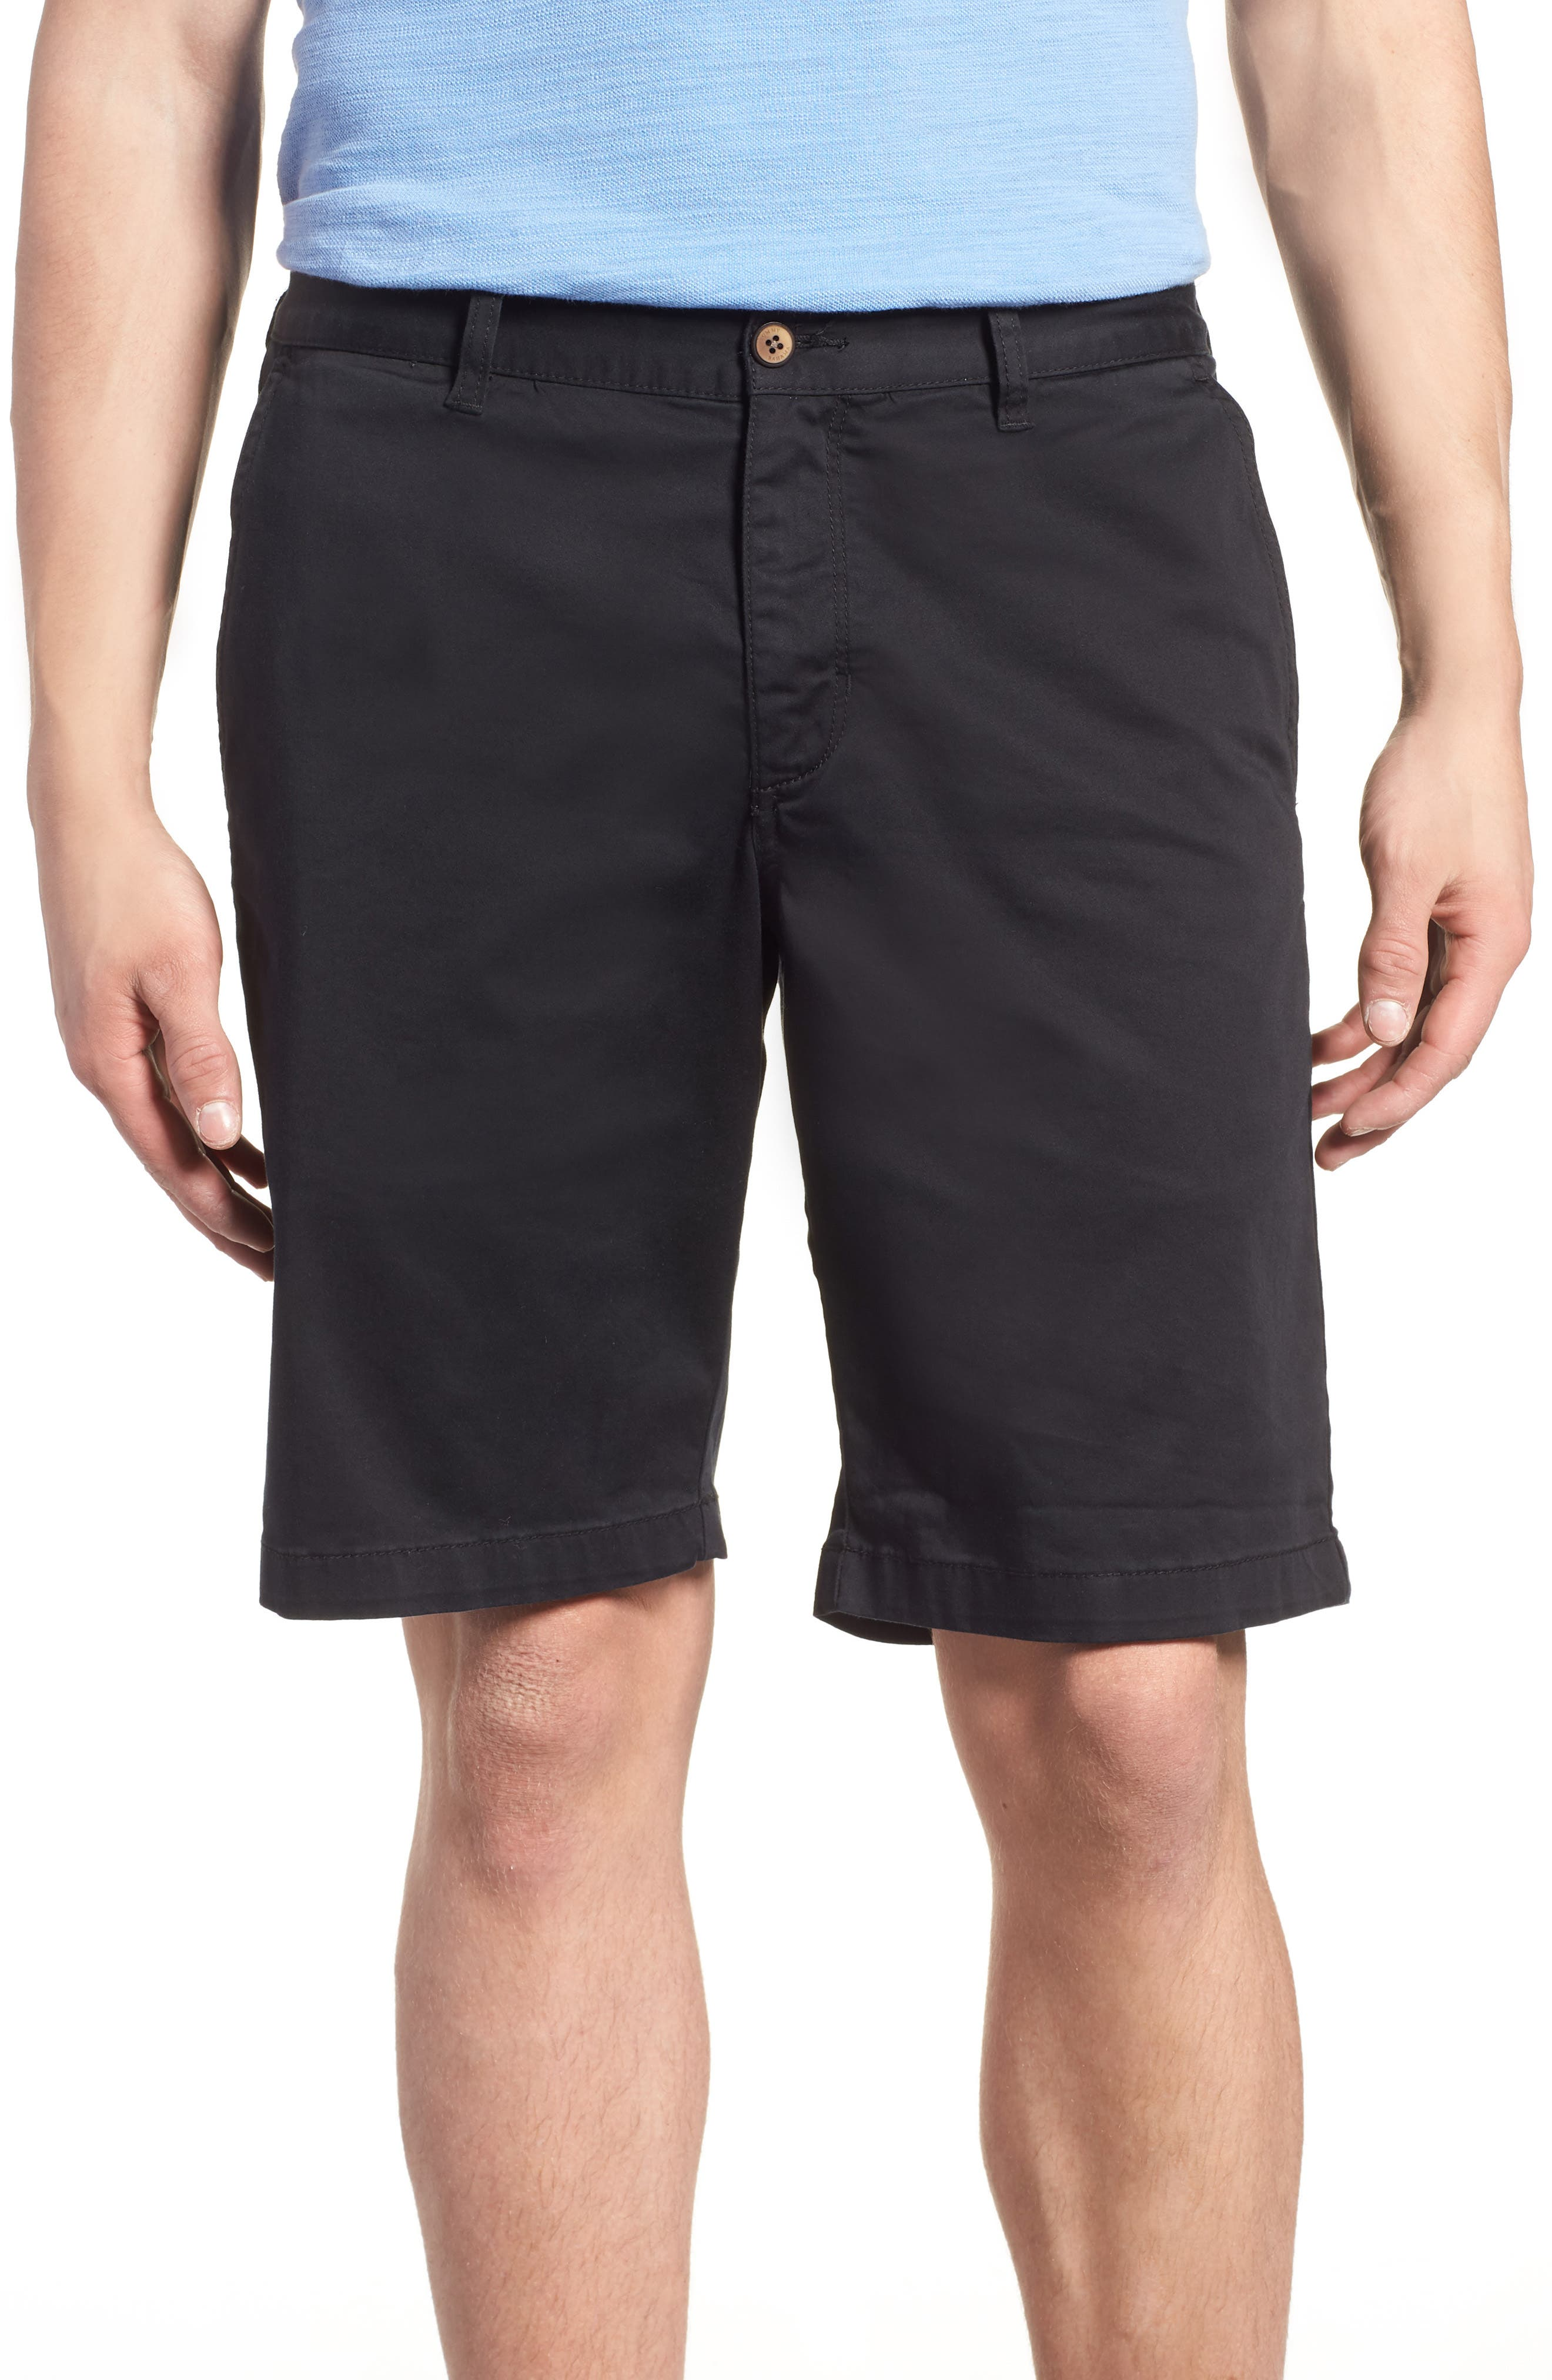 Boracay Chino Shorts,                         Main,                         color, 001